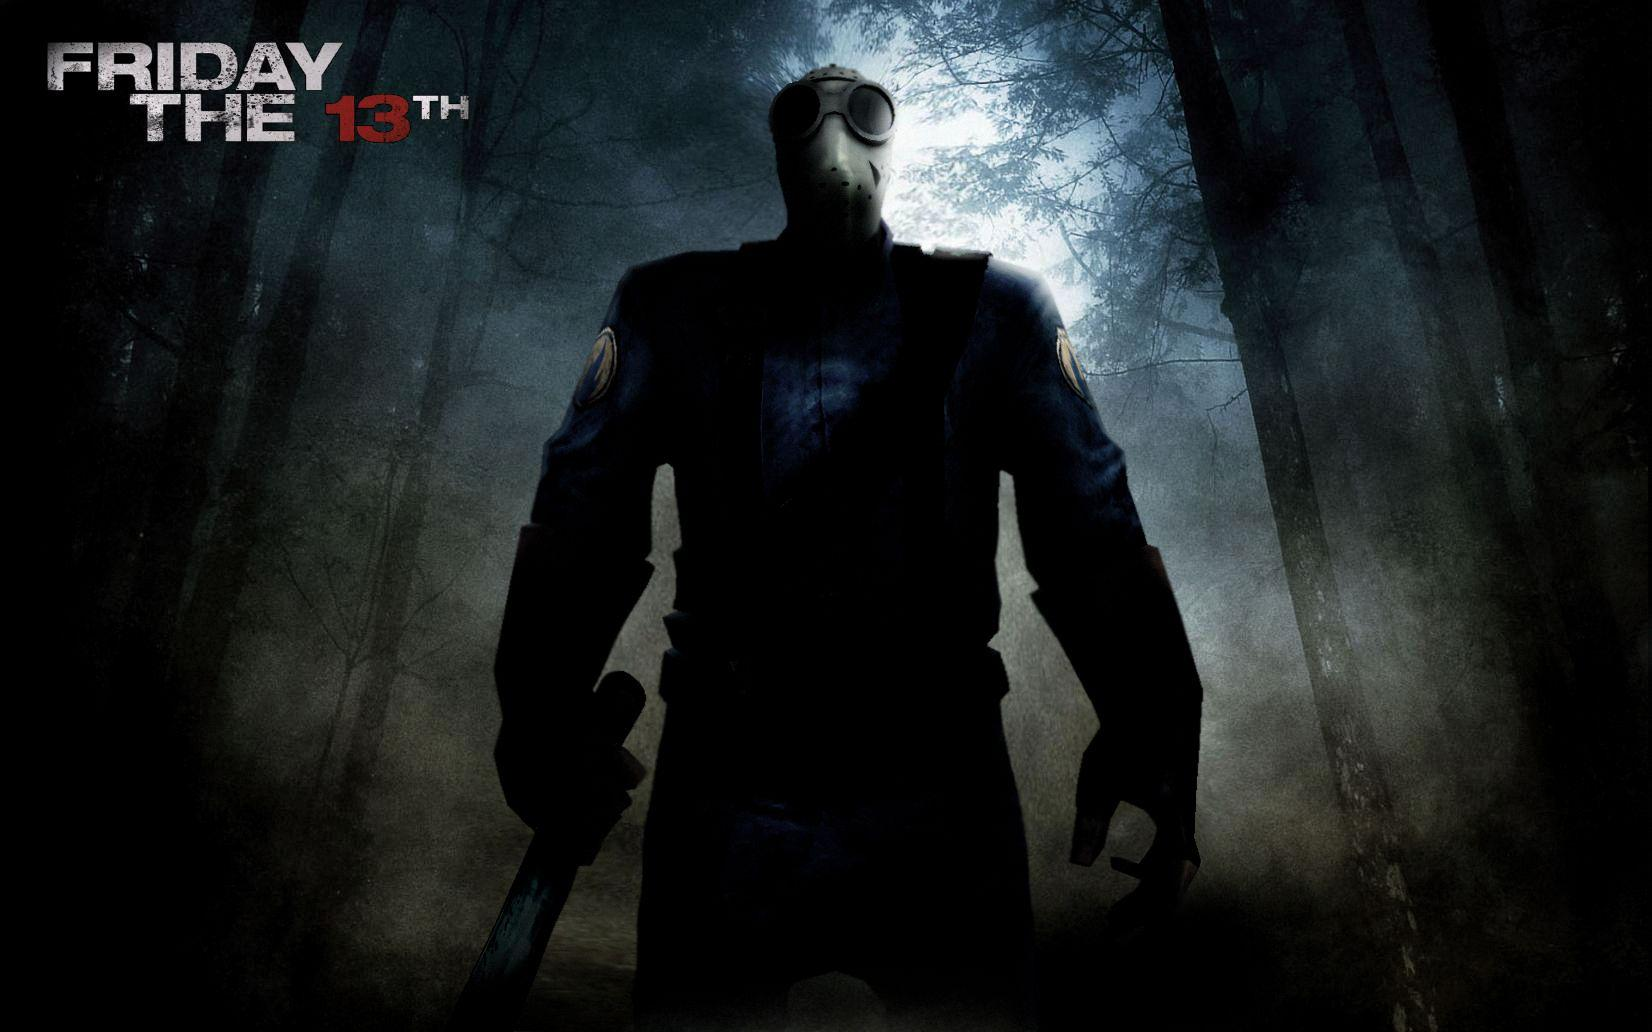 Jason Wallpapers Friday 13th, PC 42 Jason Friday 13th Image, NM.CP